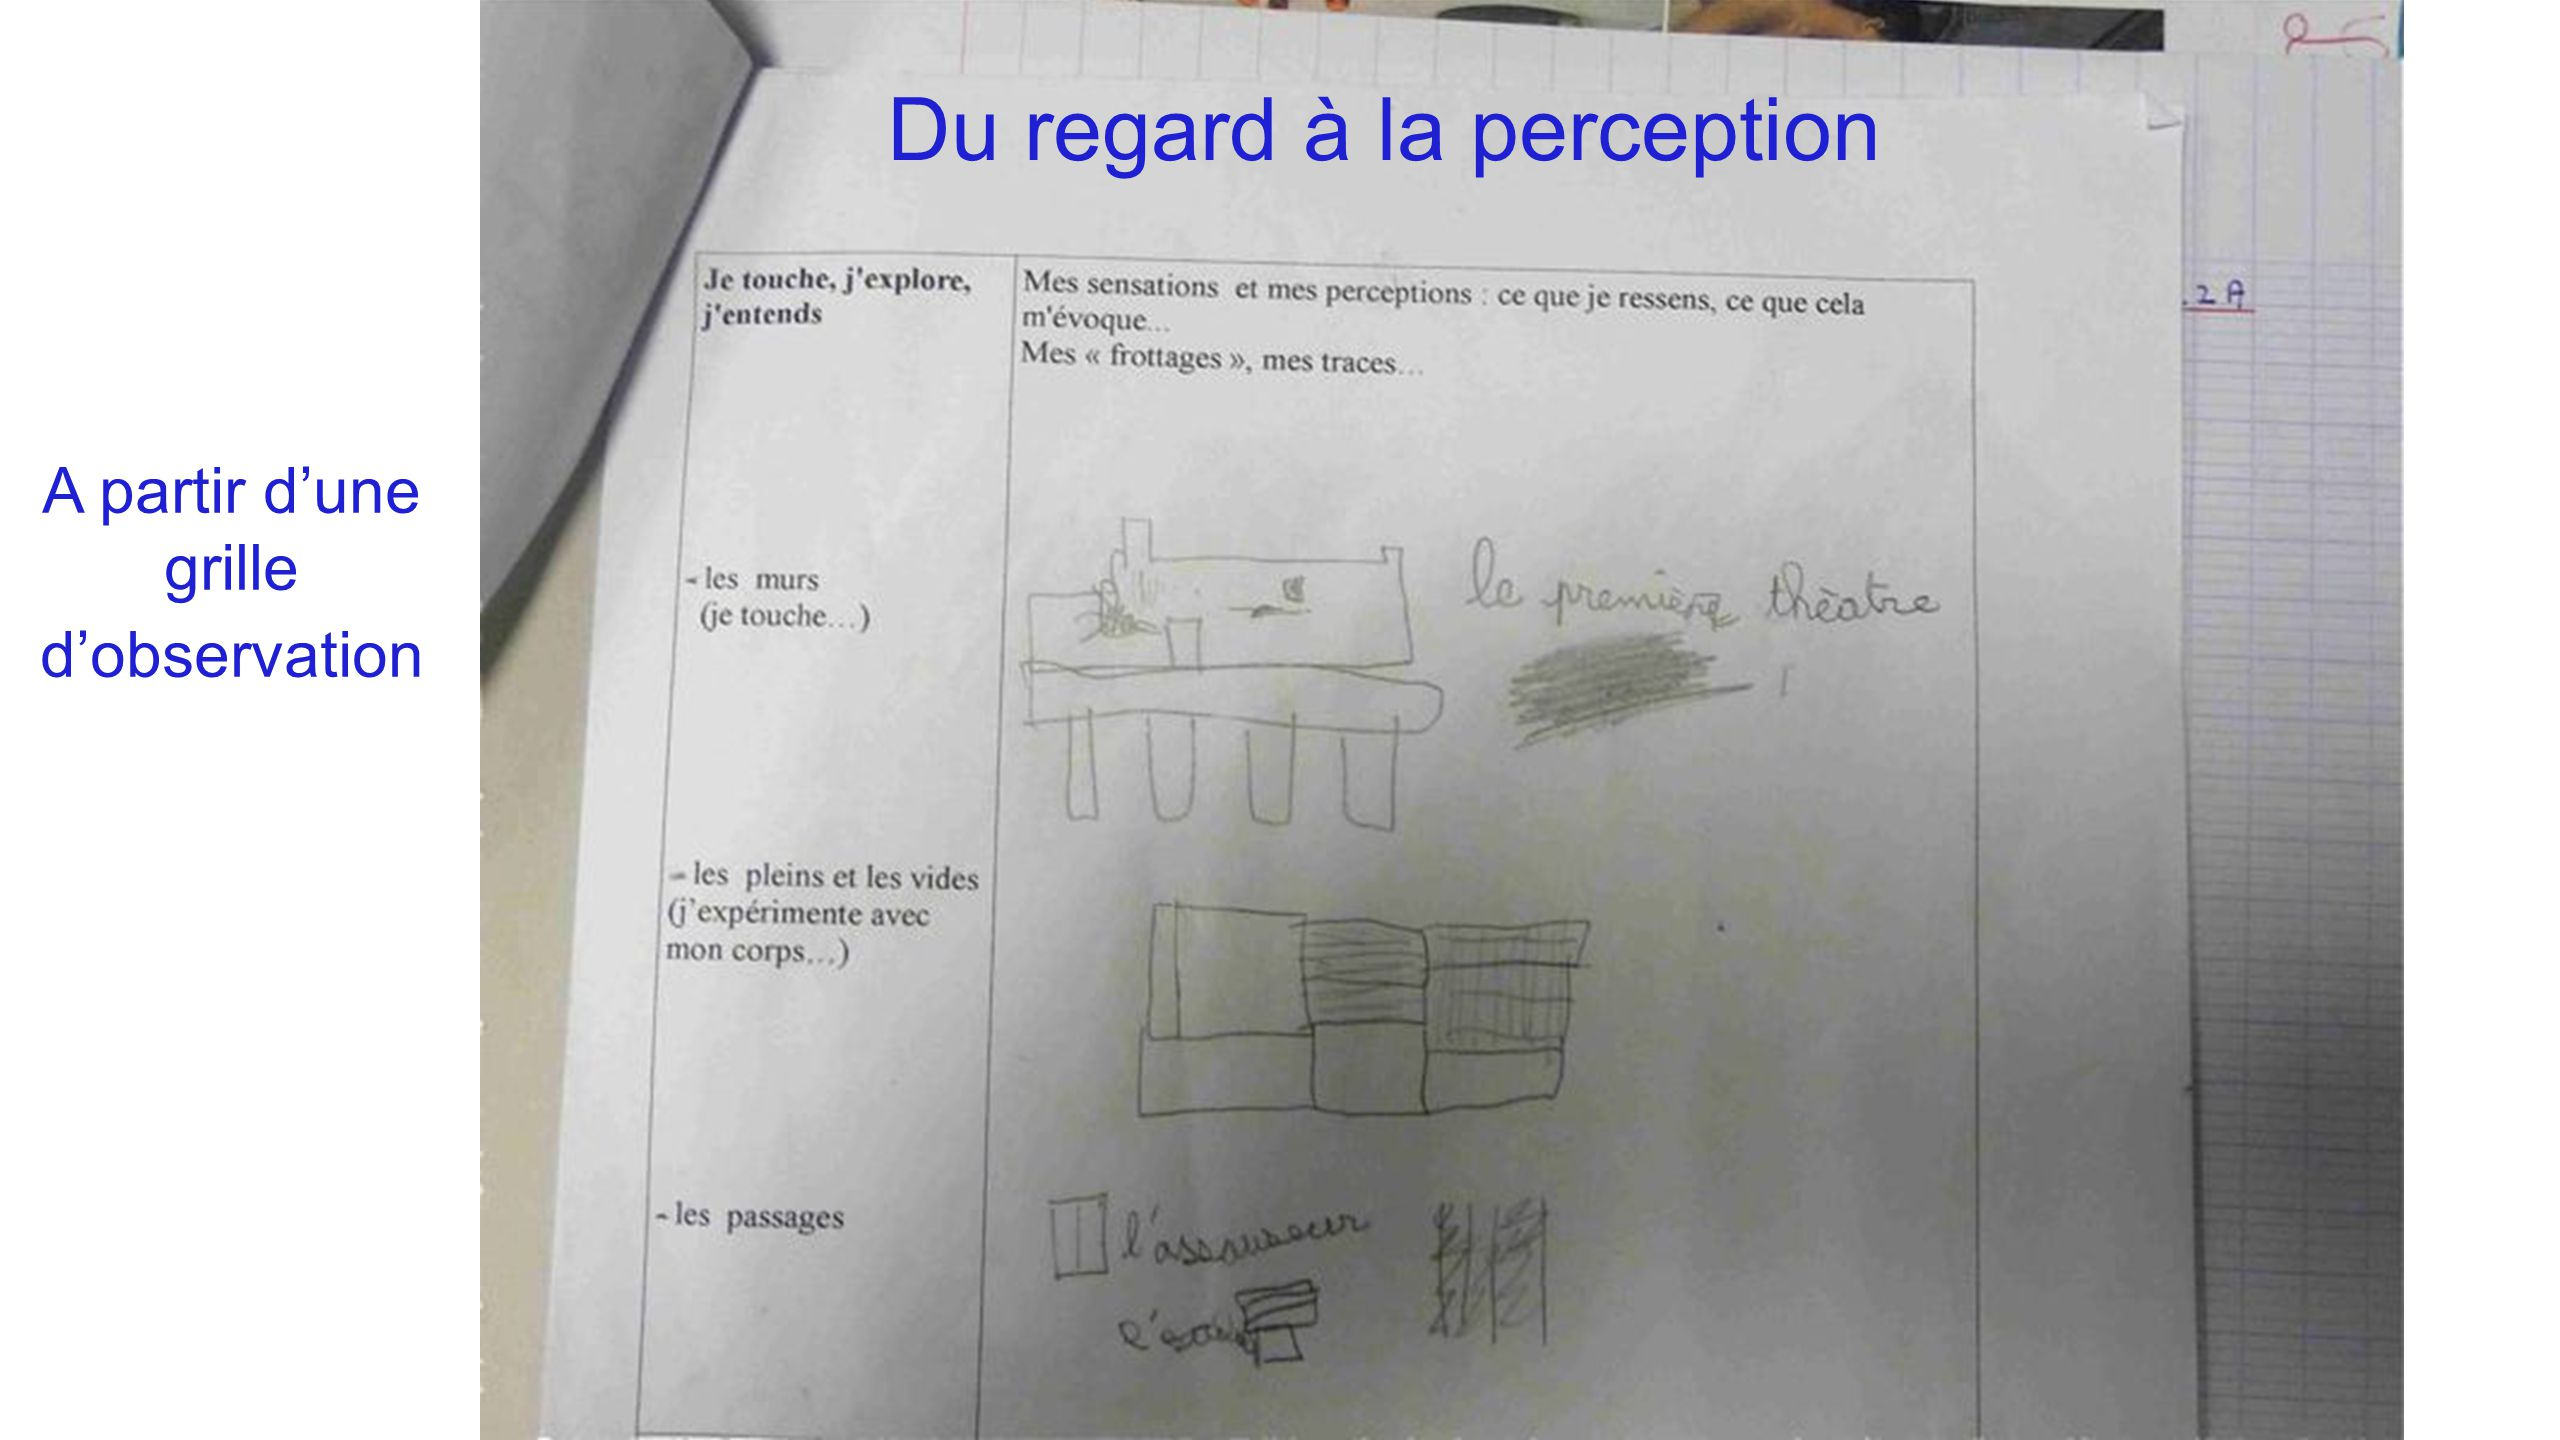 Du regard à la perception